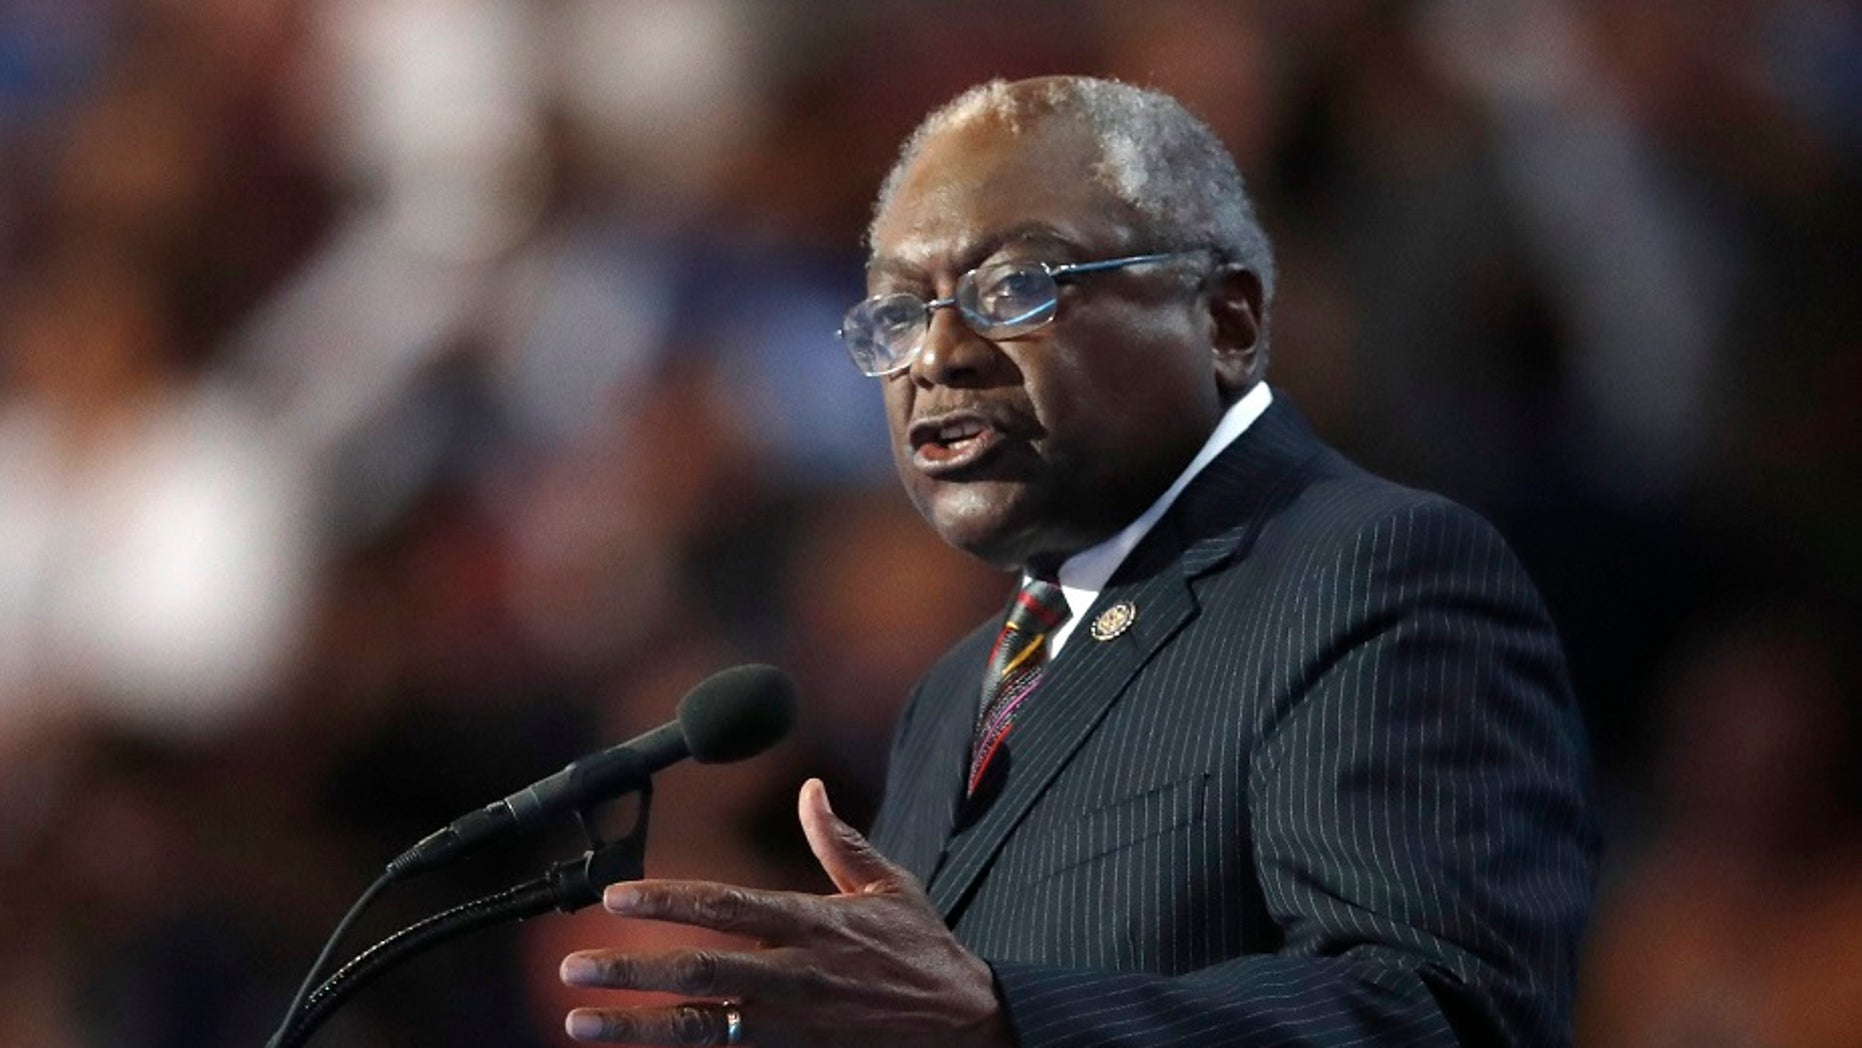 FILE - Rep. James Clyburn, D-SC, speaks during the final day of the Democratic National Convention in Philadelphia.